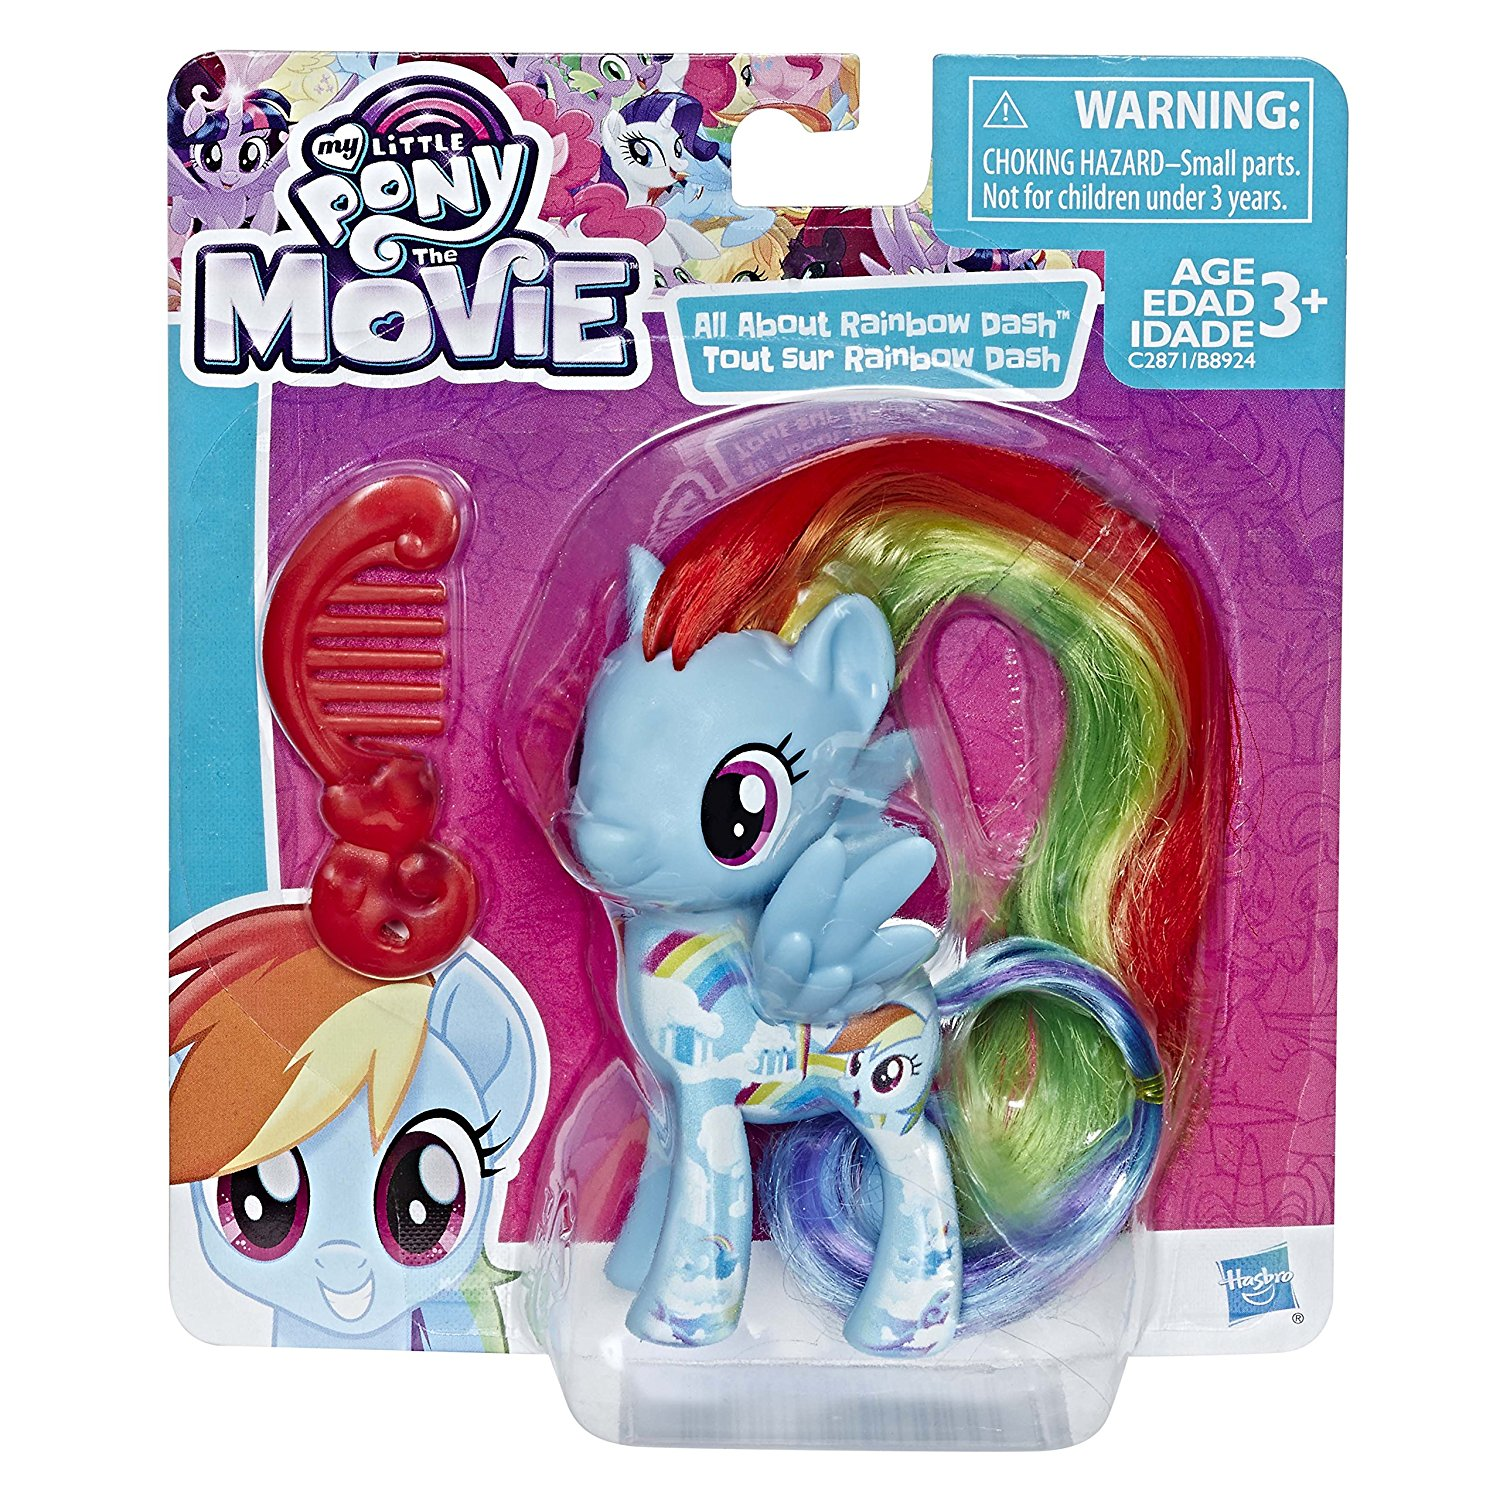 Equestria Daily Mlp Stuff Compilation Of All My Little Pony Movie Merchandise Currently